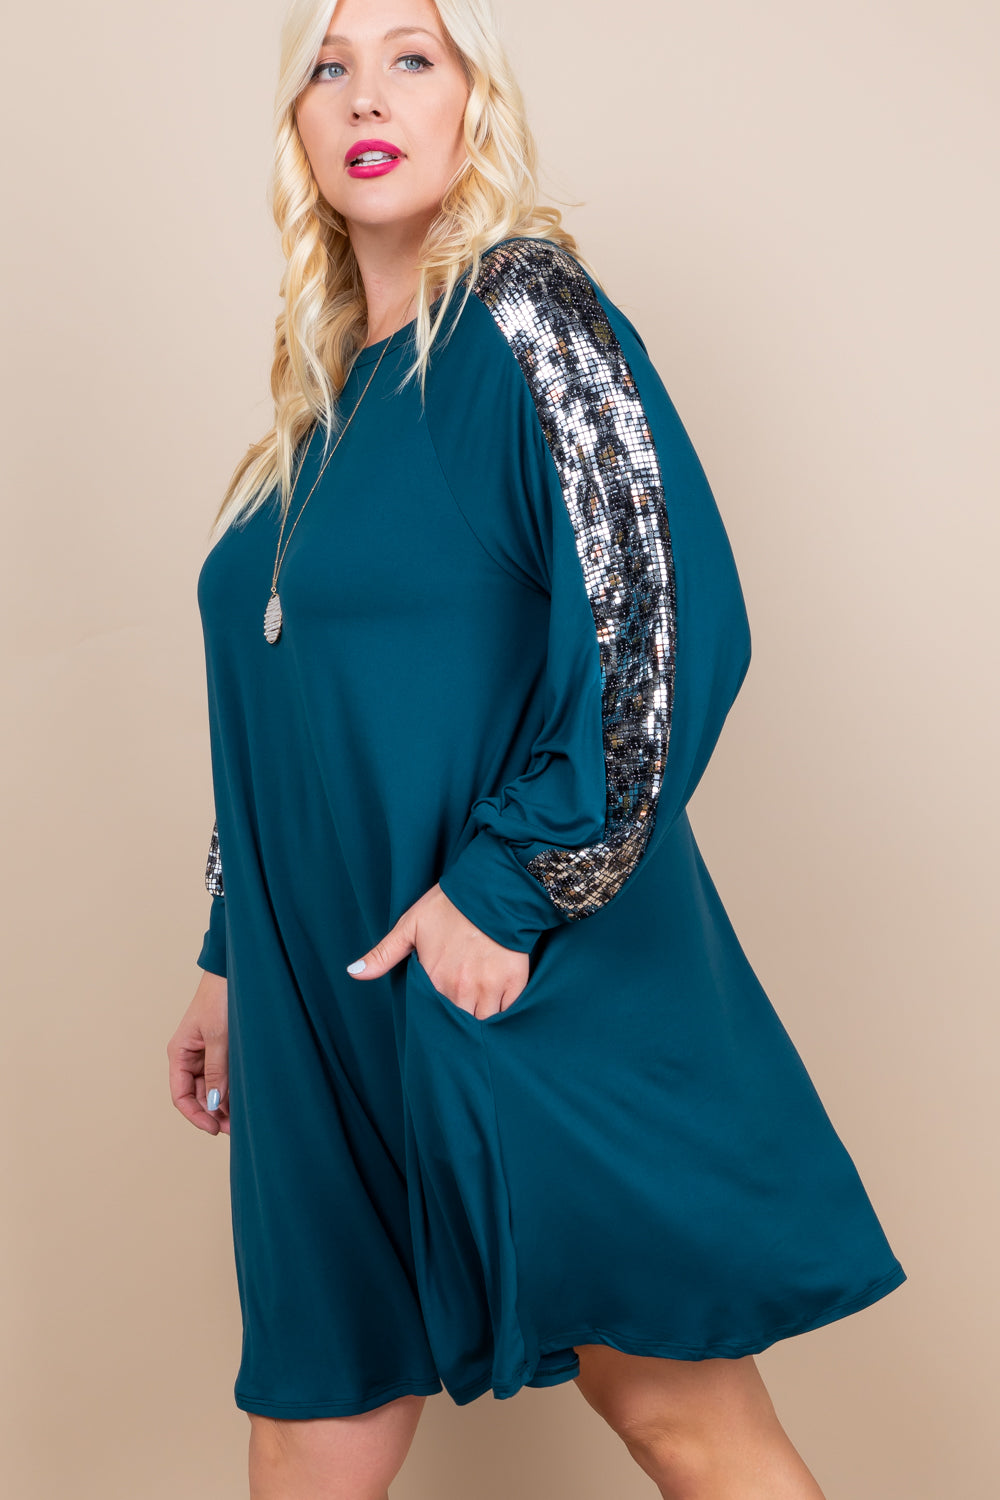 Animal Print Sequin Sleeve Dress With Pockets - Teal - Emerald Curve